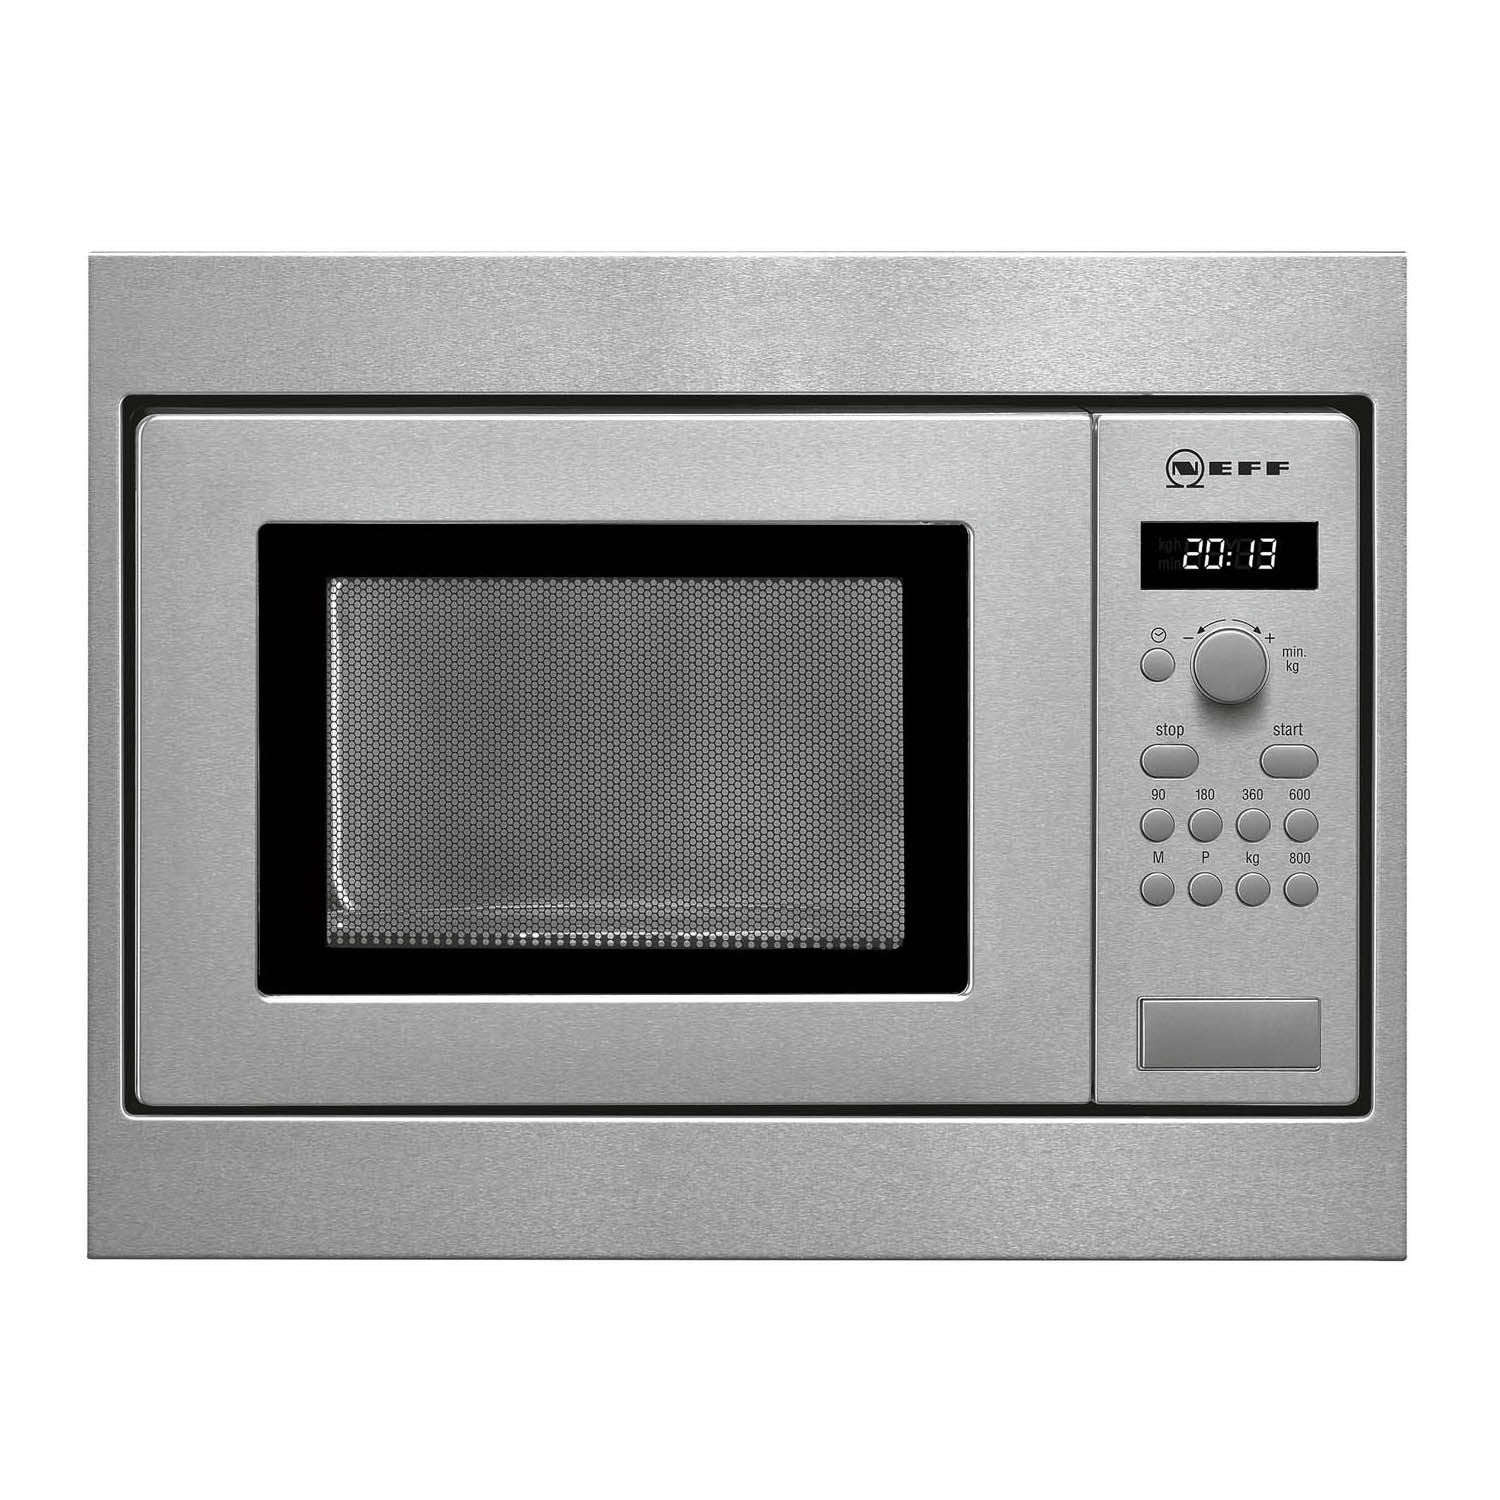 Neff 17 Litre 800W Stainless Steel Integrated (Built-In) Microwave Oven